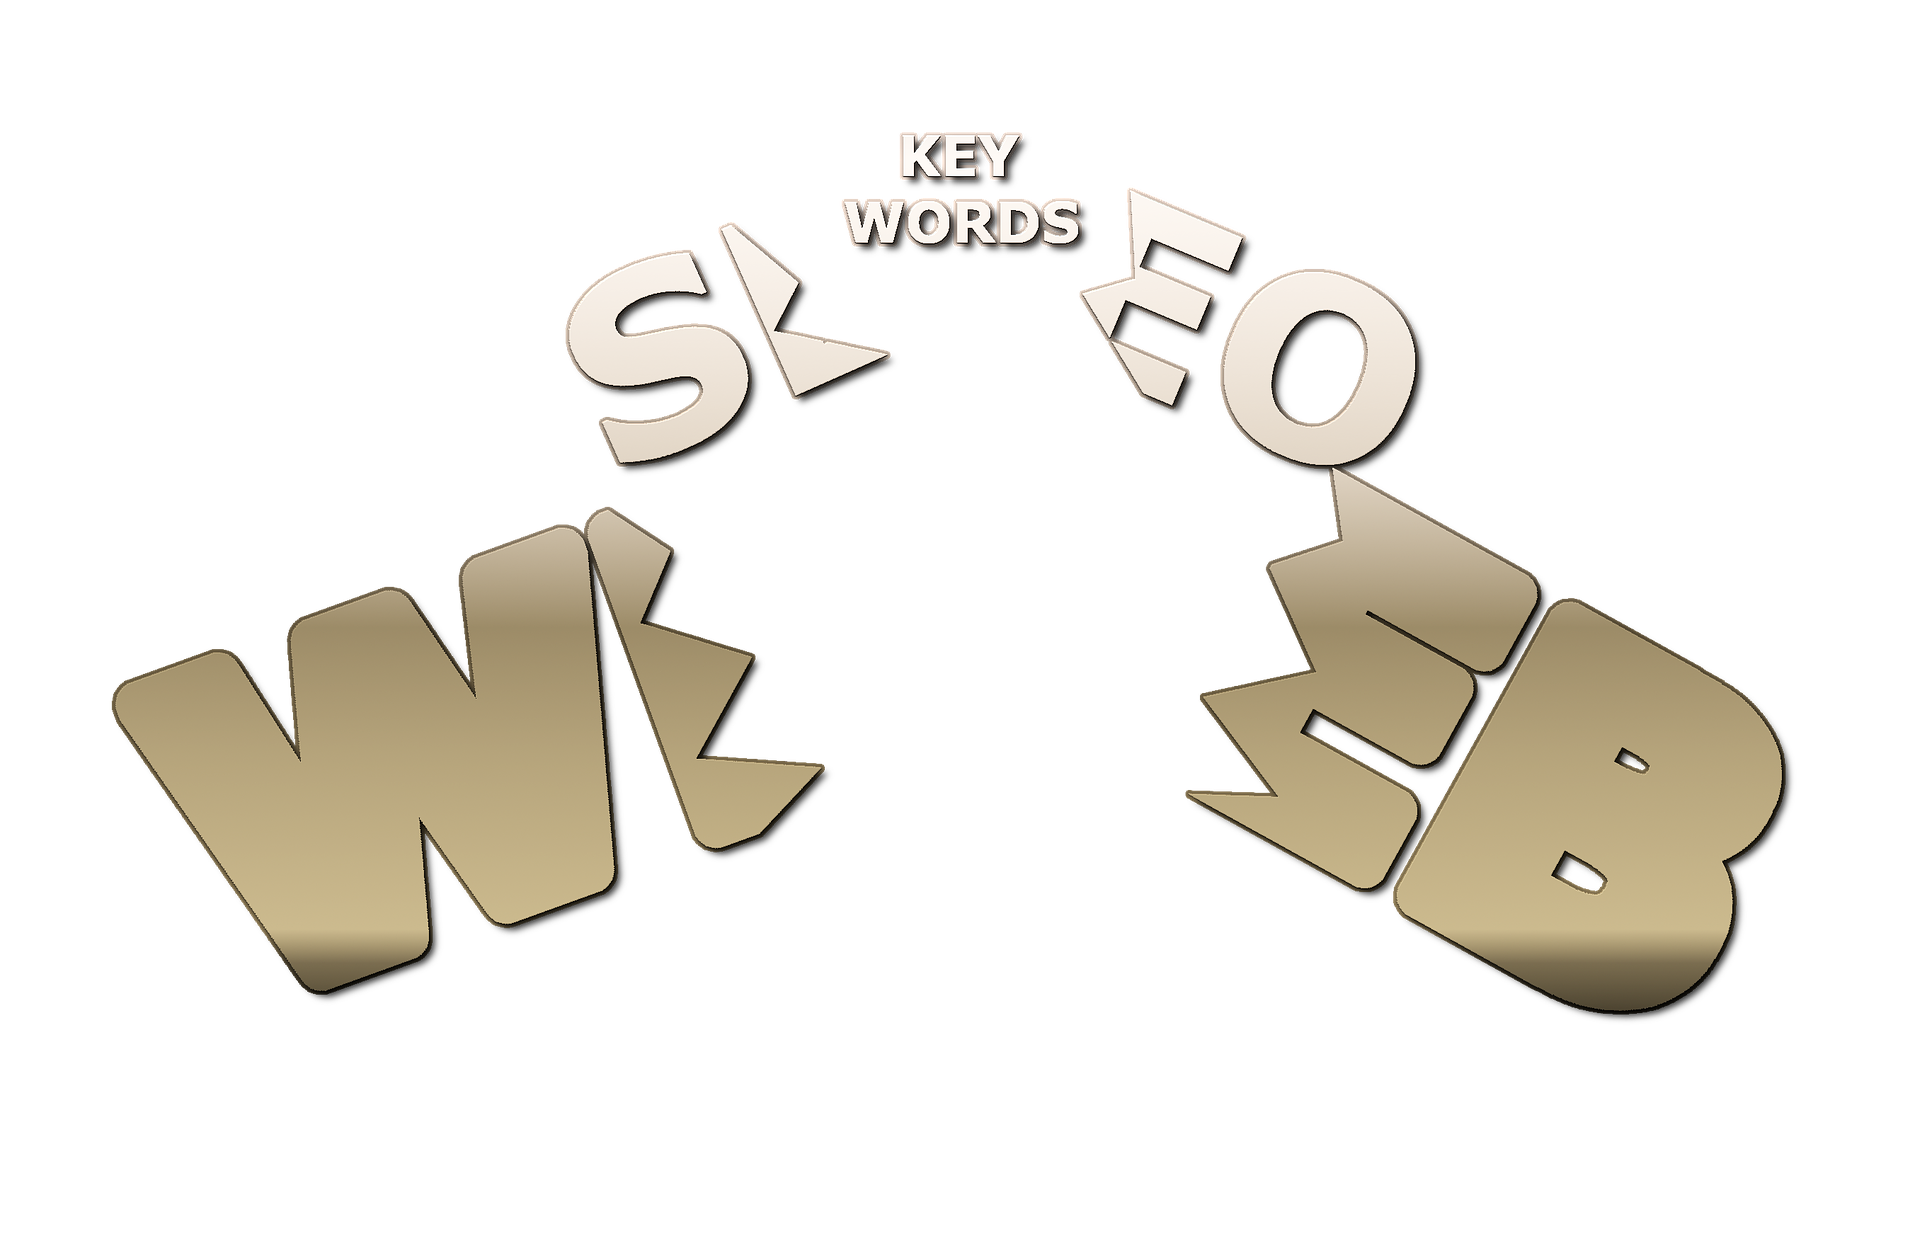 Your keyword strategy isn't working